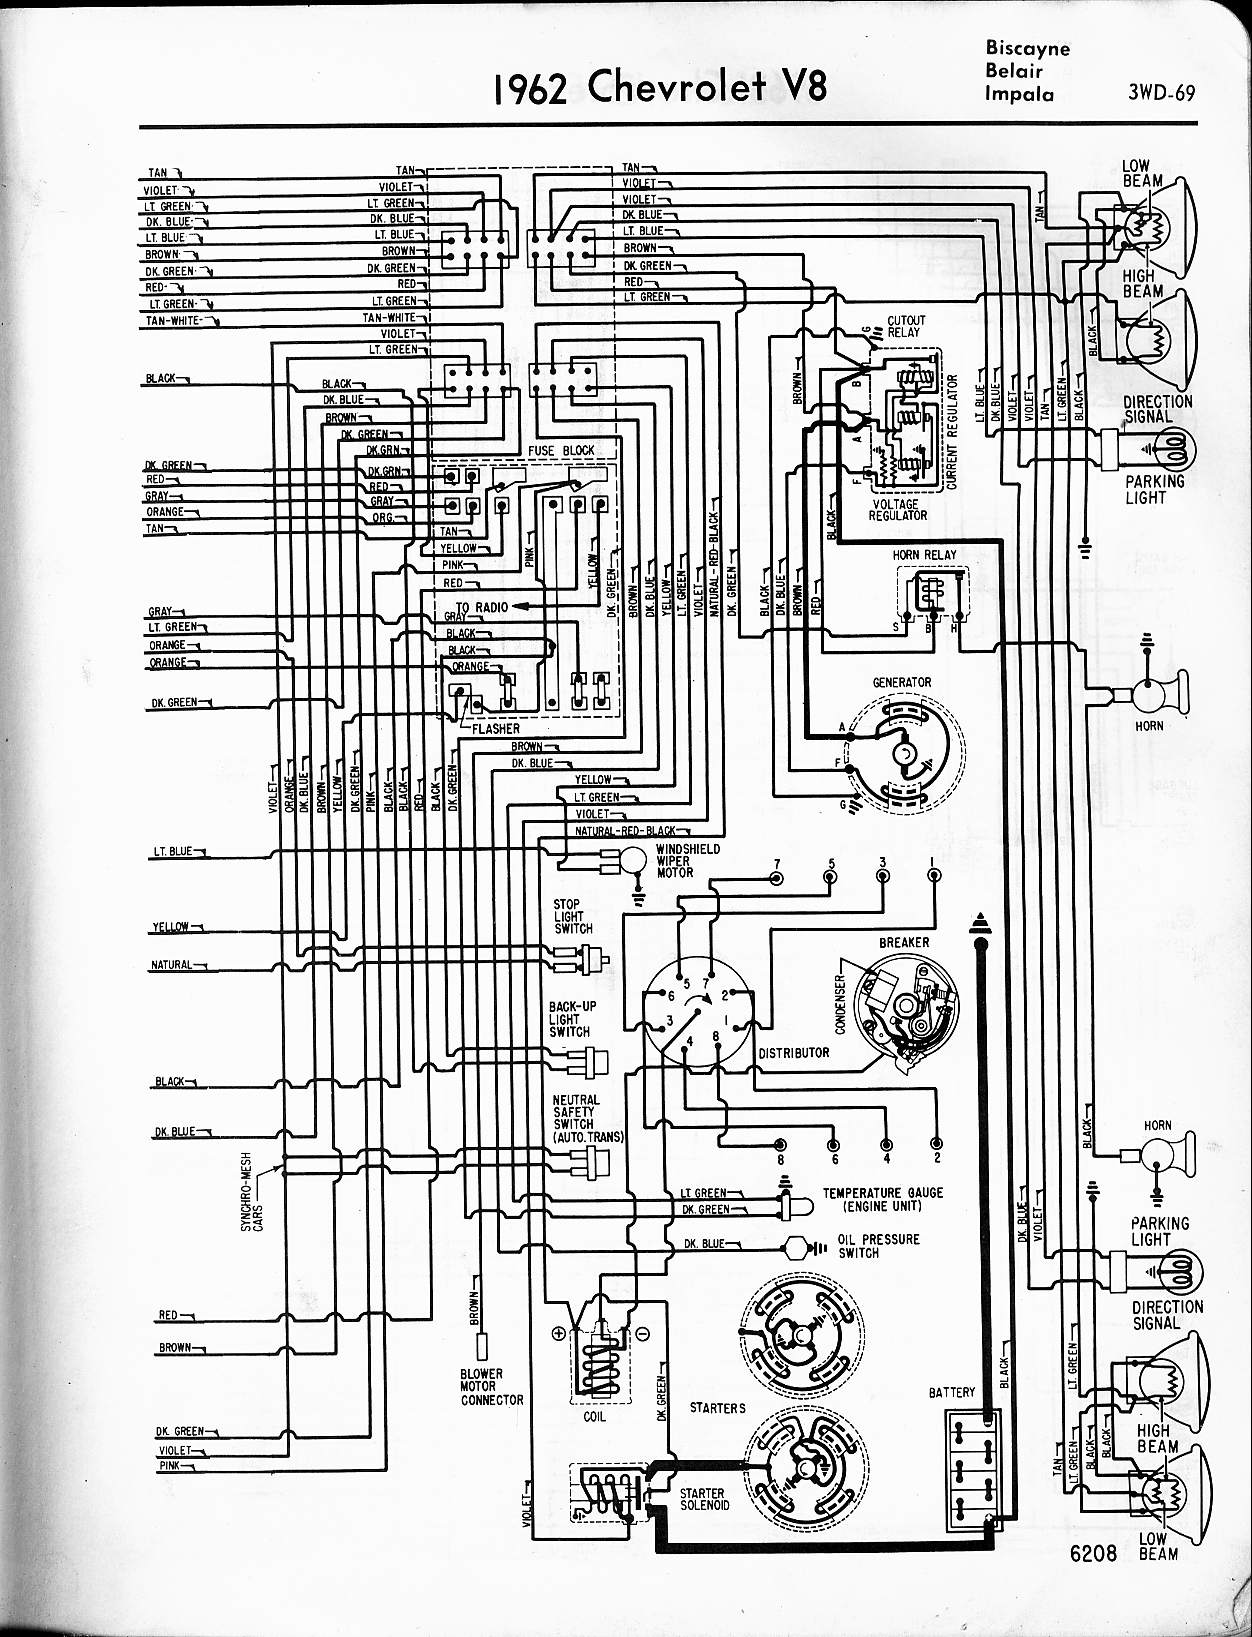 1966 chevrolet impala wiring diagram wiring diagram u2022 rh msblog co 1966 GMC Wiring Diagram 1966 GMC 1 2 Ton Wiring-Diagram